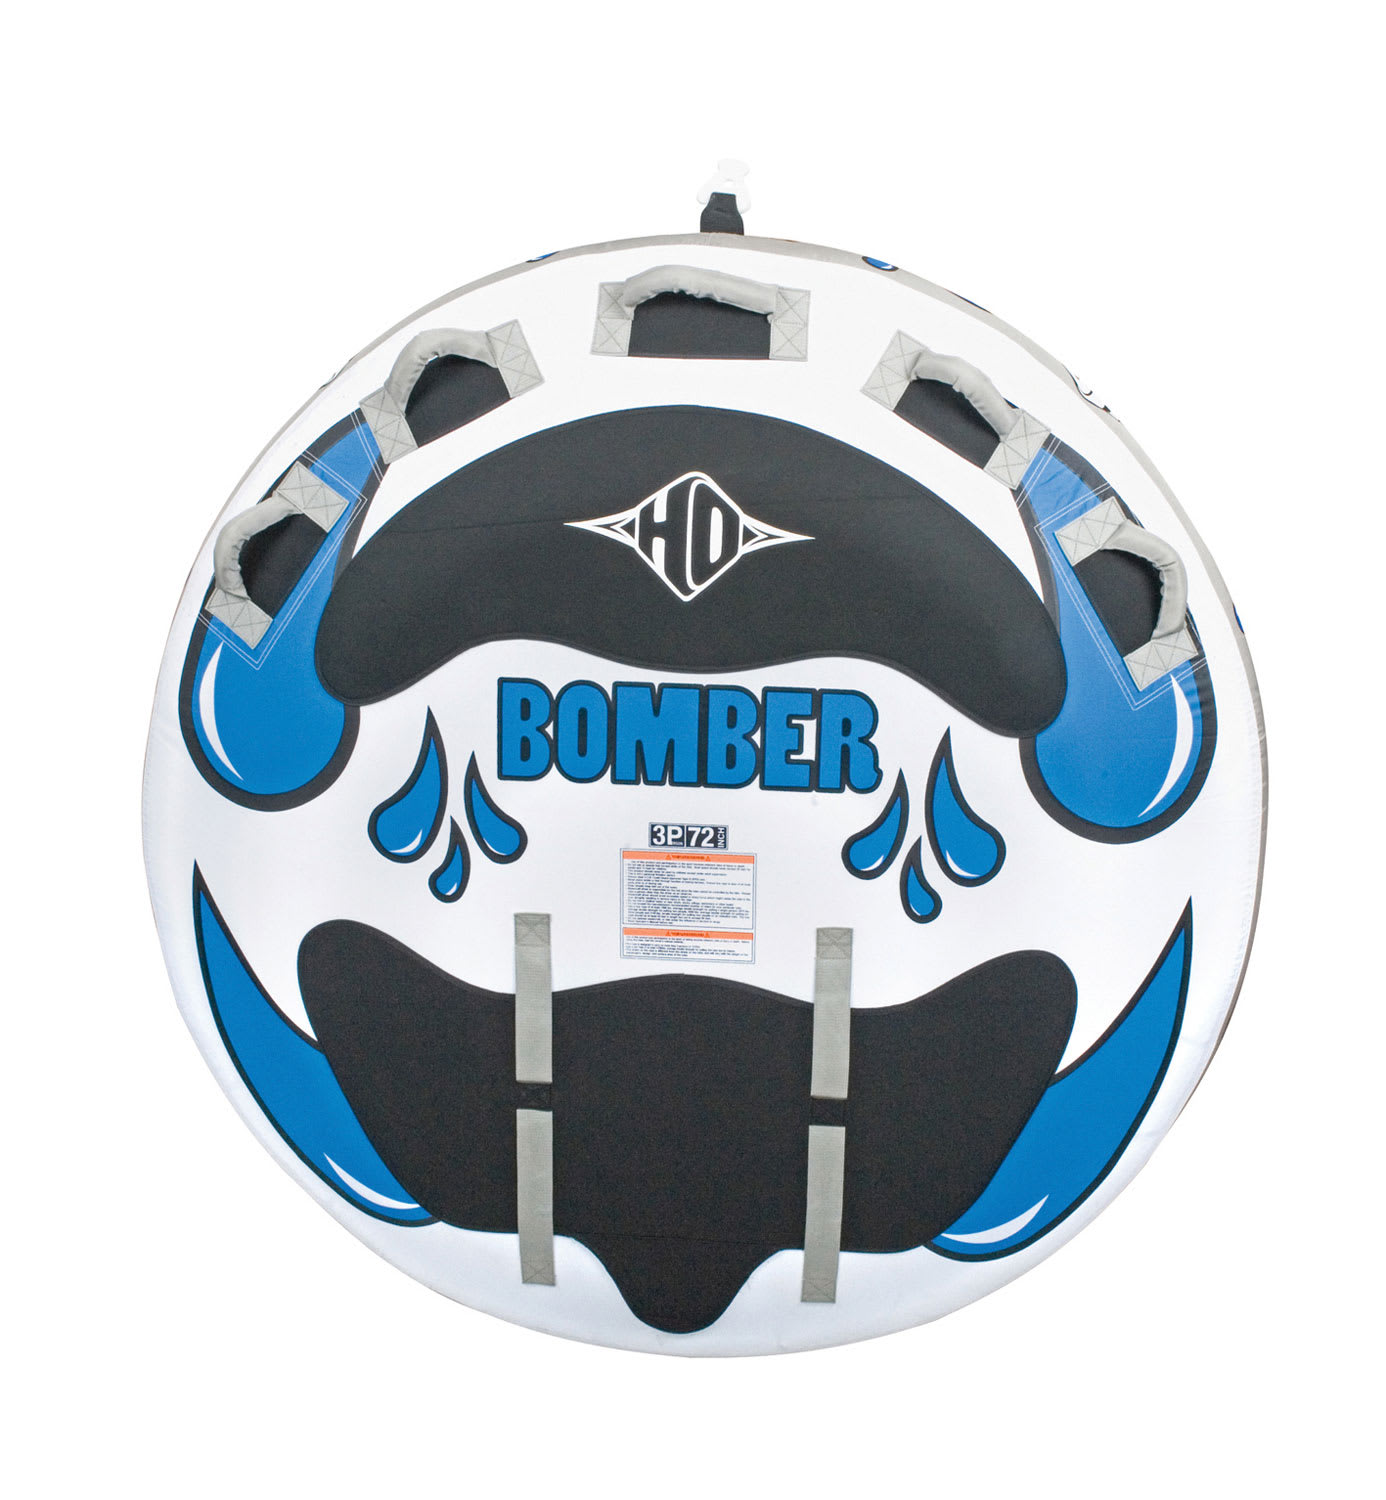 Shop for HO Bomber Inflatable Tube